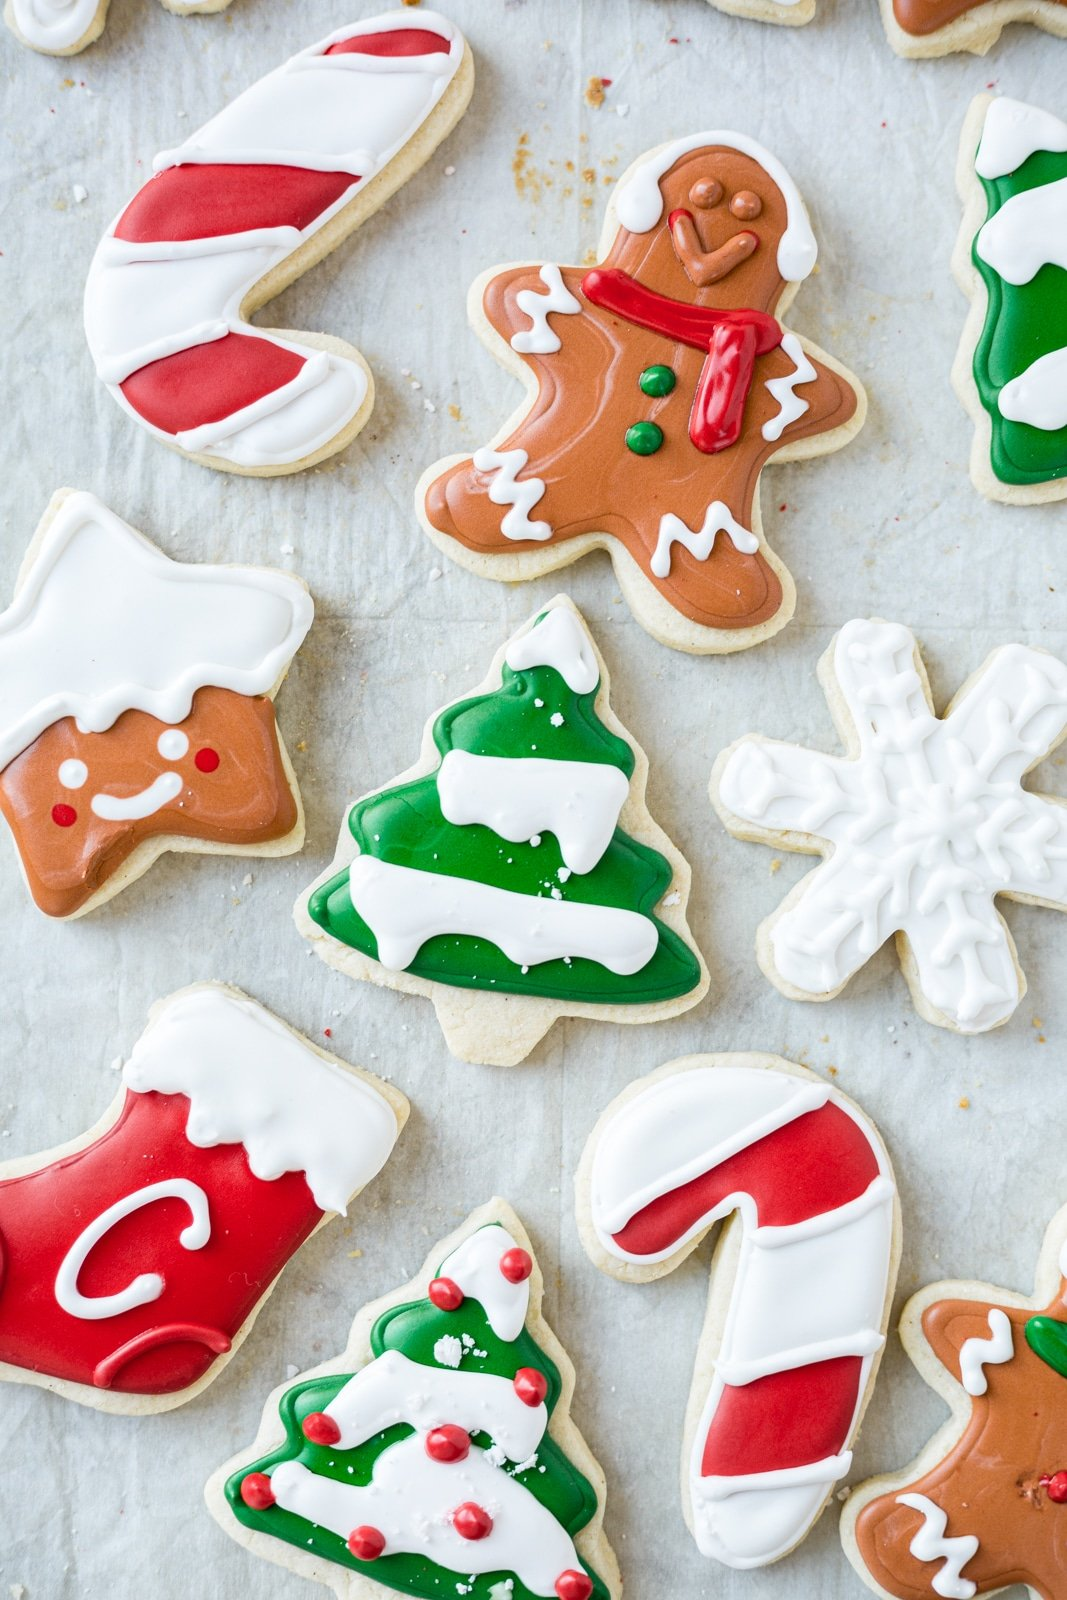 gluten free dairy free sugar cookies iced in the shape of trees, gingerbread men and stars with royal icing